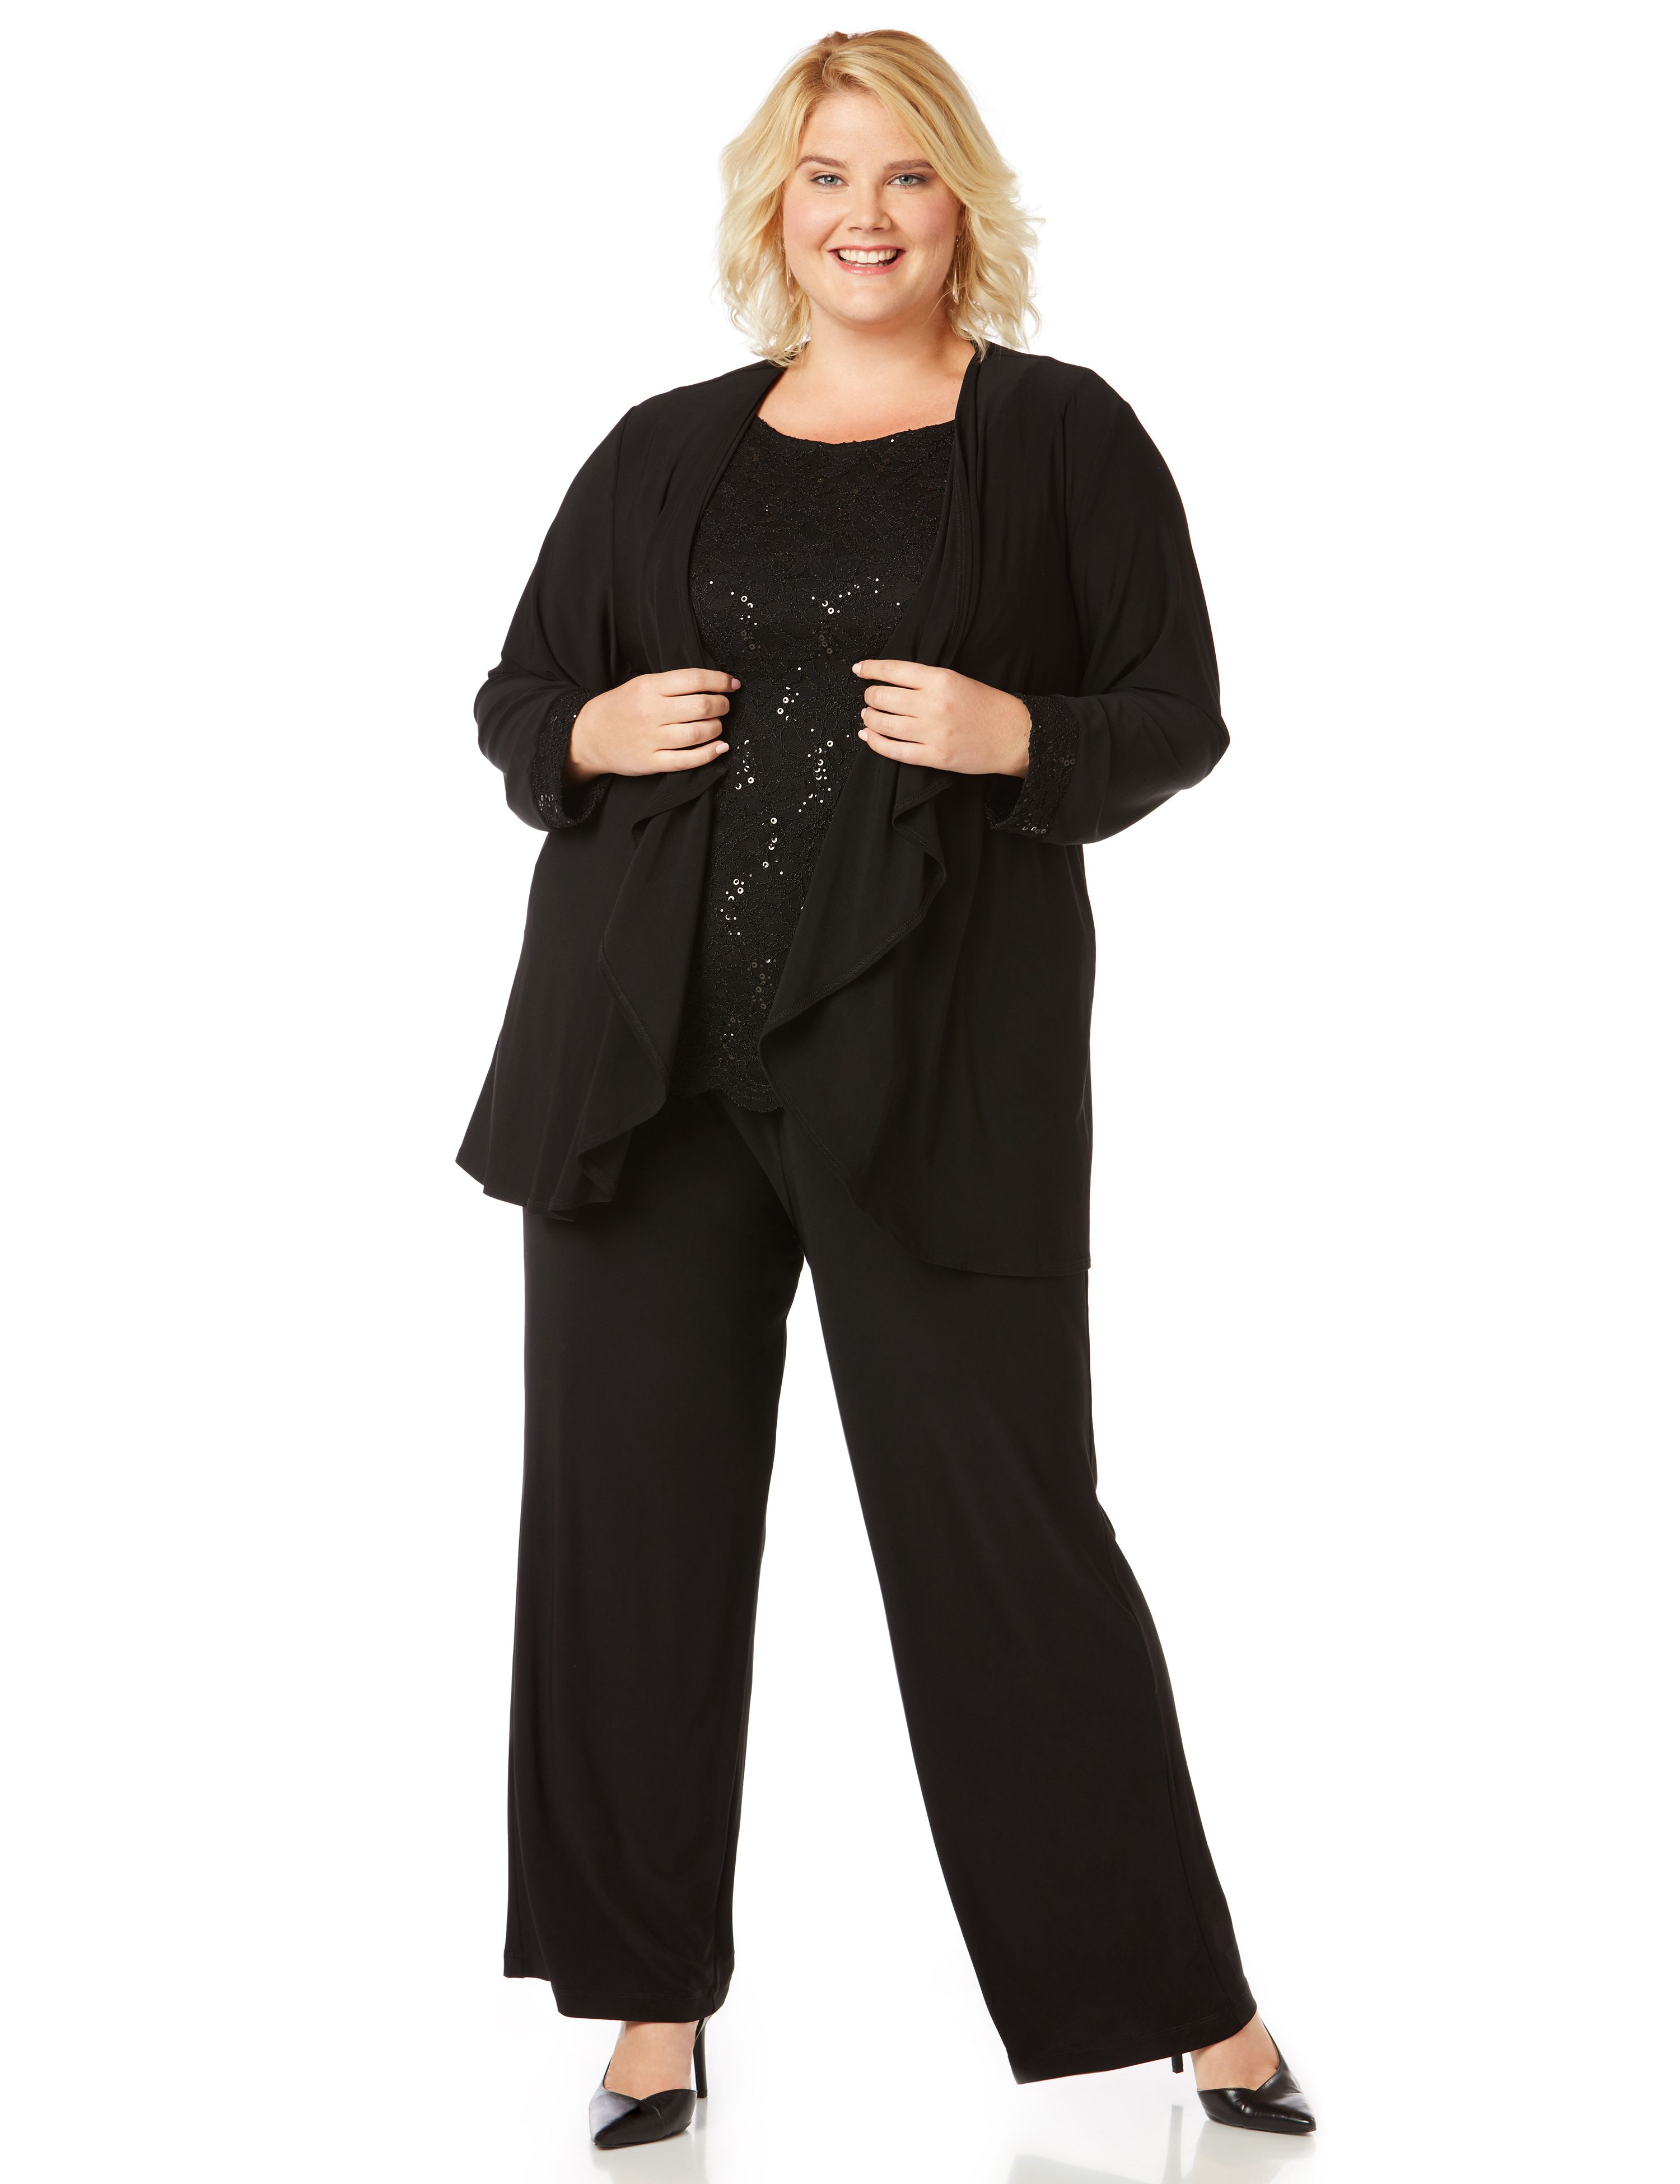 Evening Shine Pantsuit 1086064 TIANNA B PANT SUIT WITH LAC MP-300081707